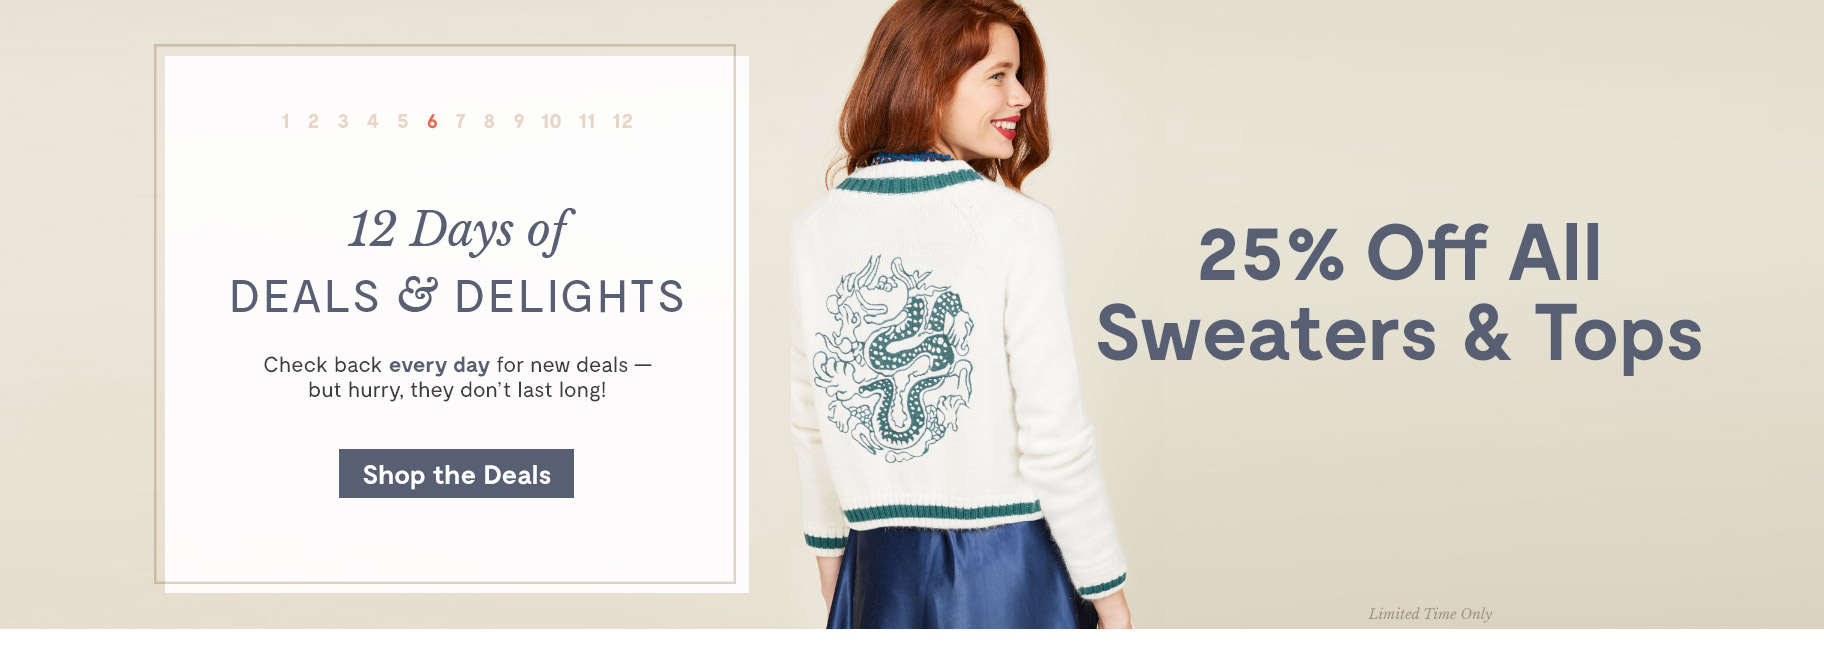 12 Days of Deals & Delights. Day 6 25% Off All Sweaters & Tops. Shop the Deals.